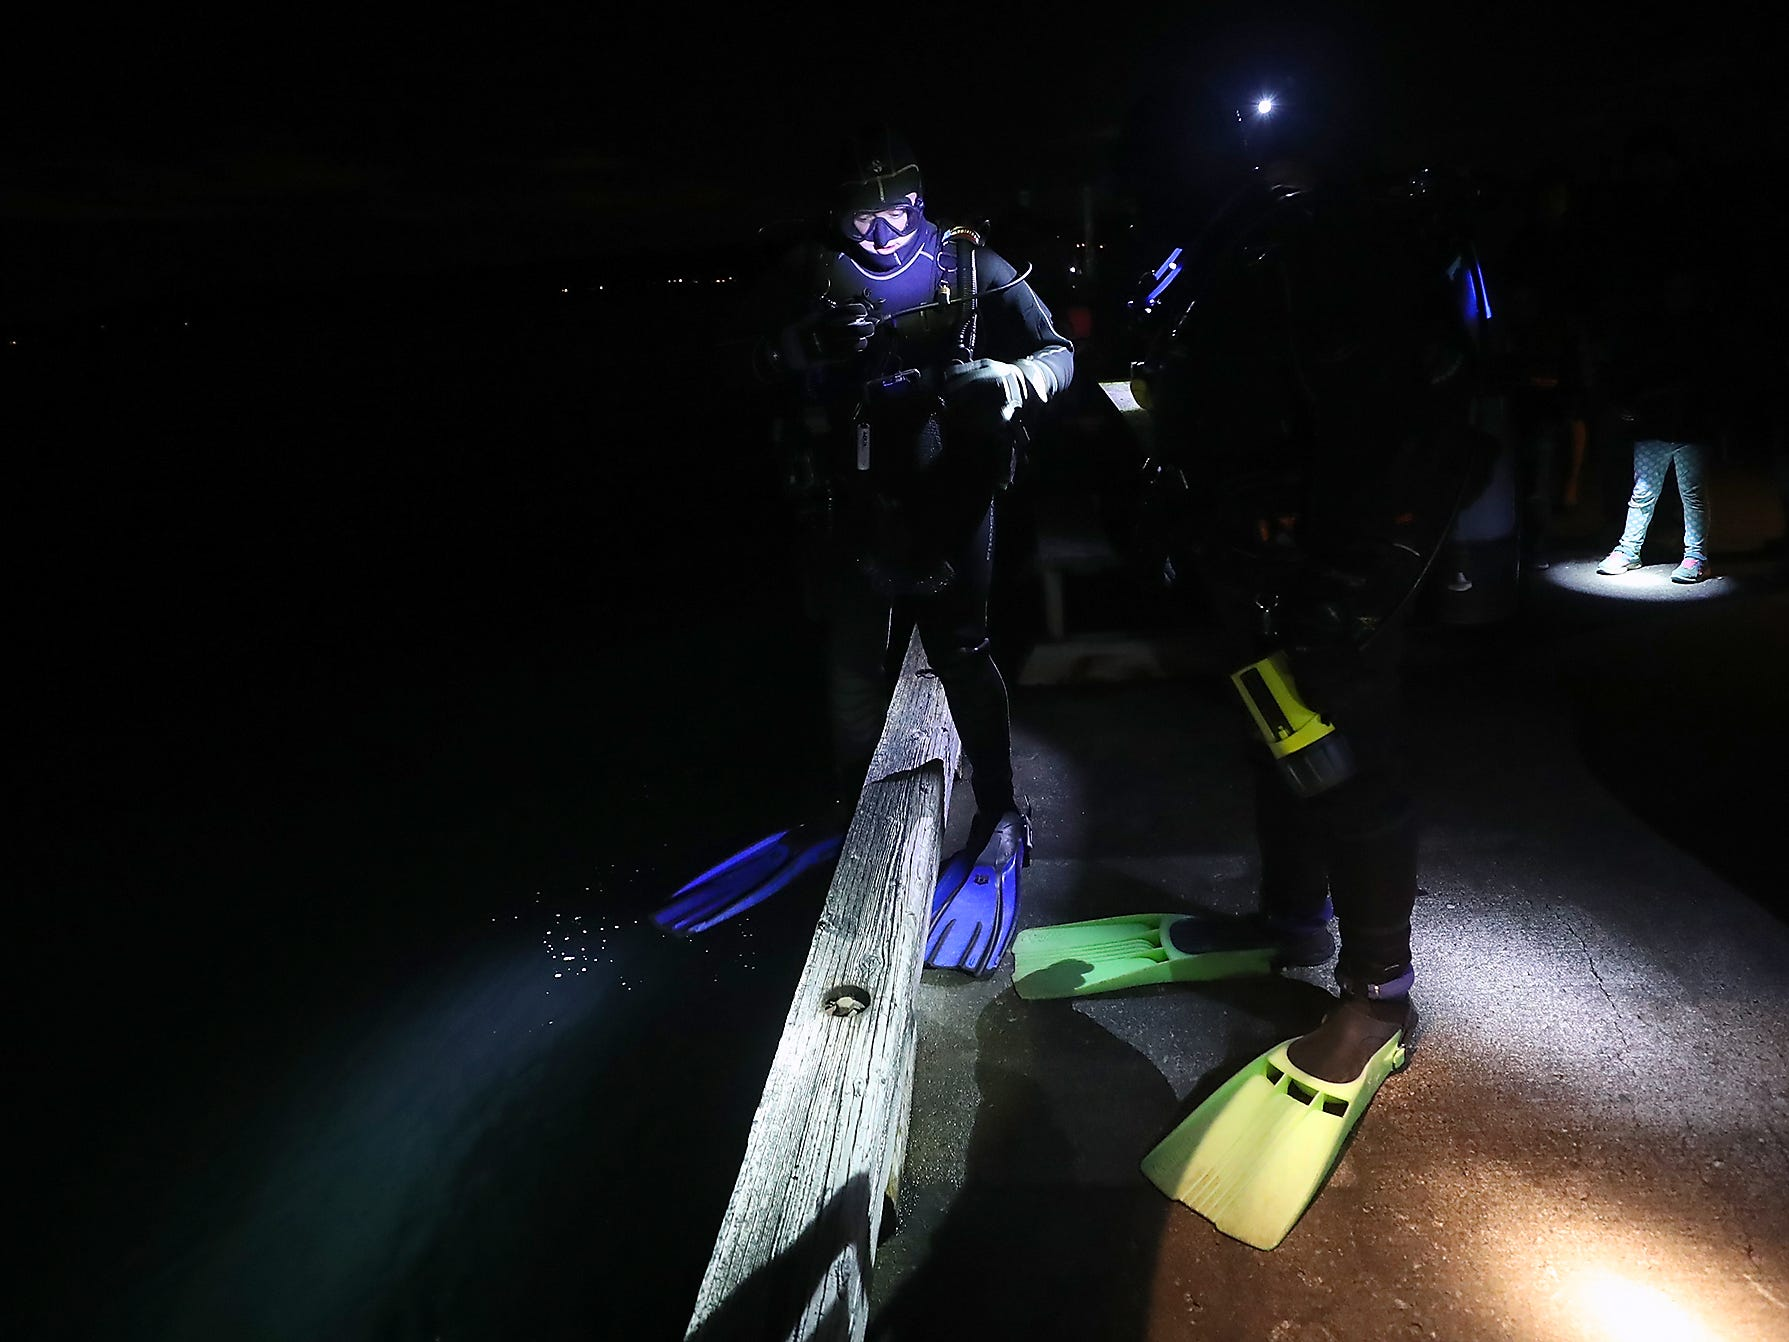 A pair of scuba divers get ready to take the plunge off the side of the dock during the Night Time Pier Peer at the Brownsville Marina on Friday, March 1, 2019. Kitsap Beach Naturalists shined their lights on the sea life that flourishes around the pier and divers captured different specimens and shared them with those on the pier.